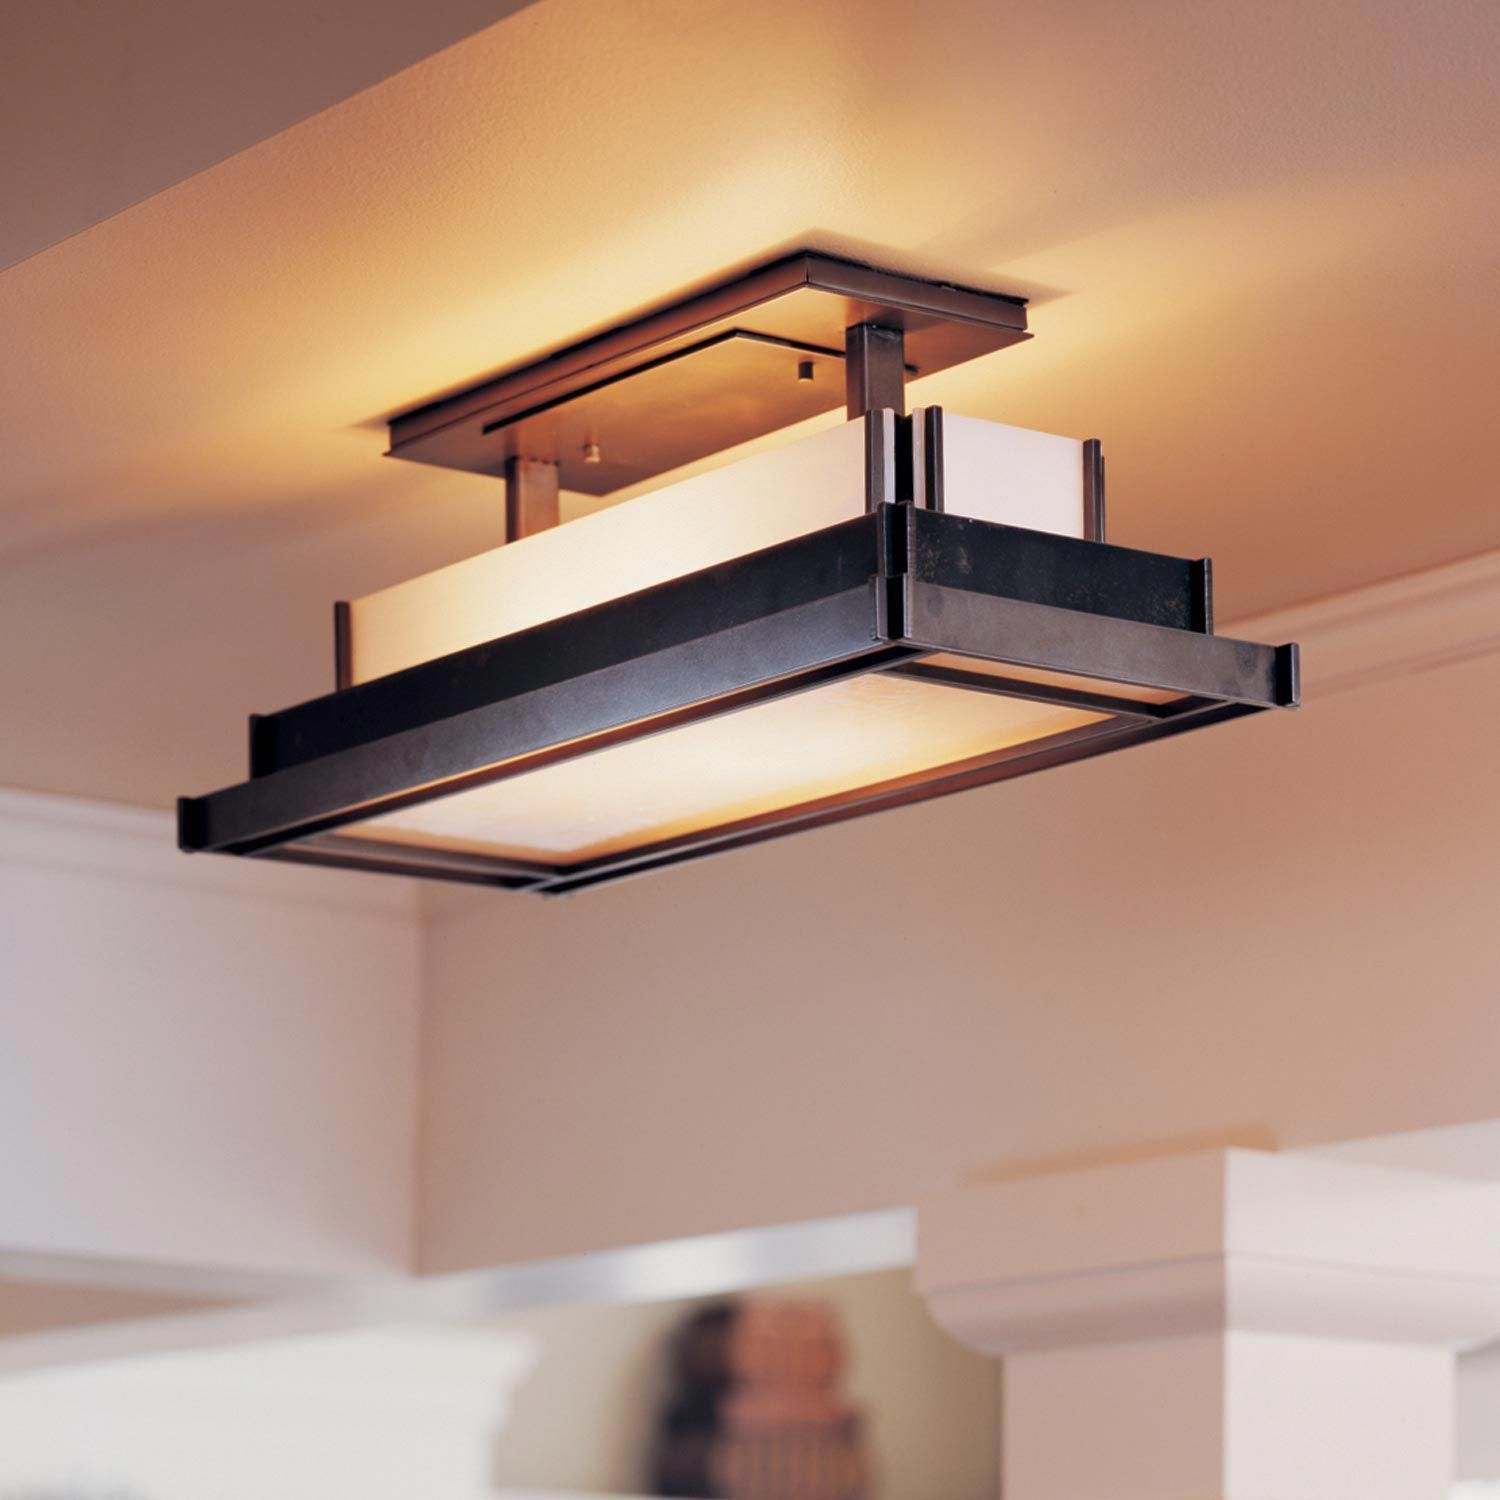 Pin On Lighting Systems